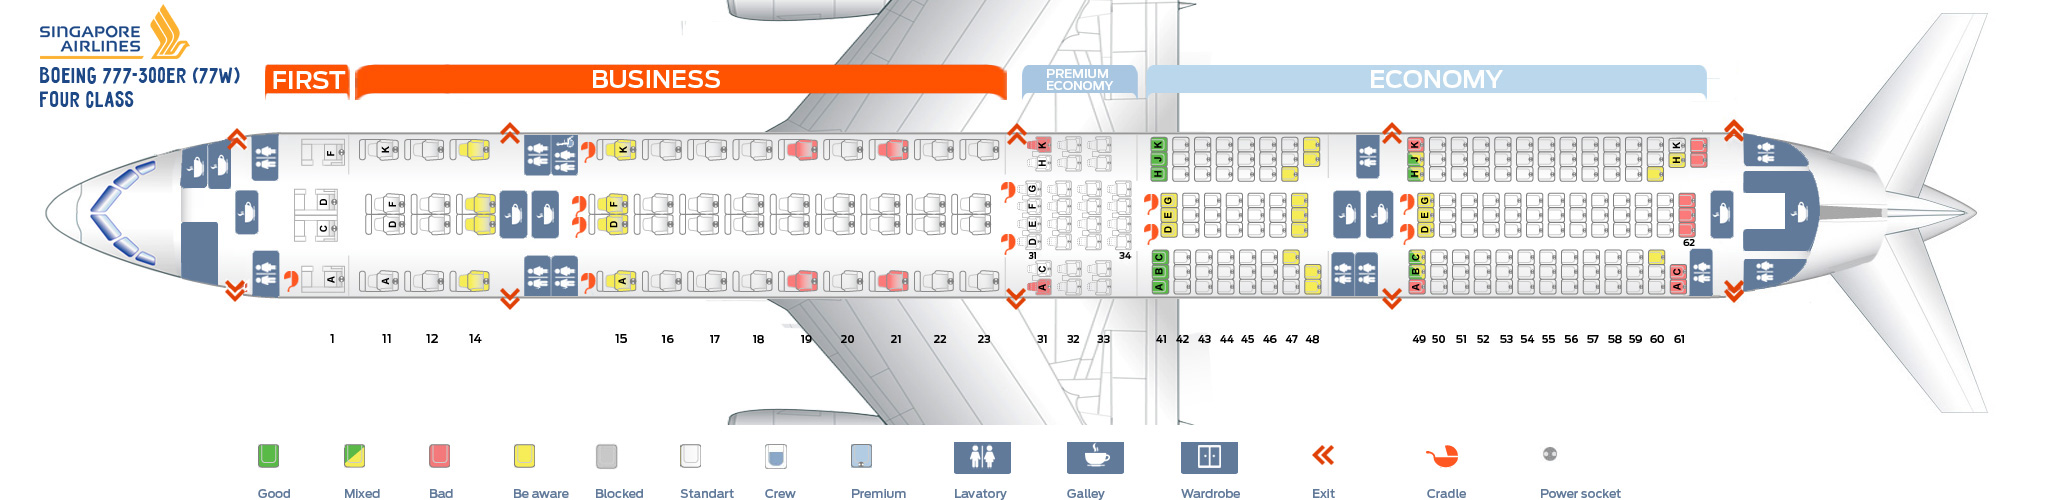 Seat Map Boeing 777-300ER Four Class Singapore Airlines